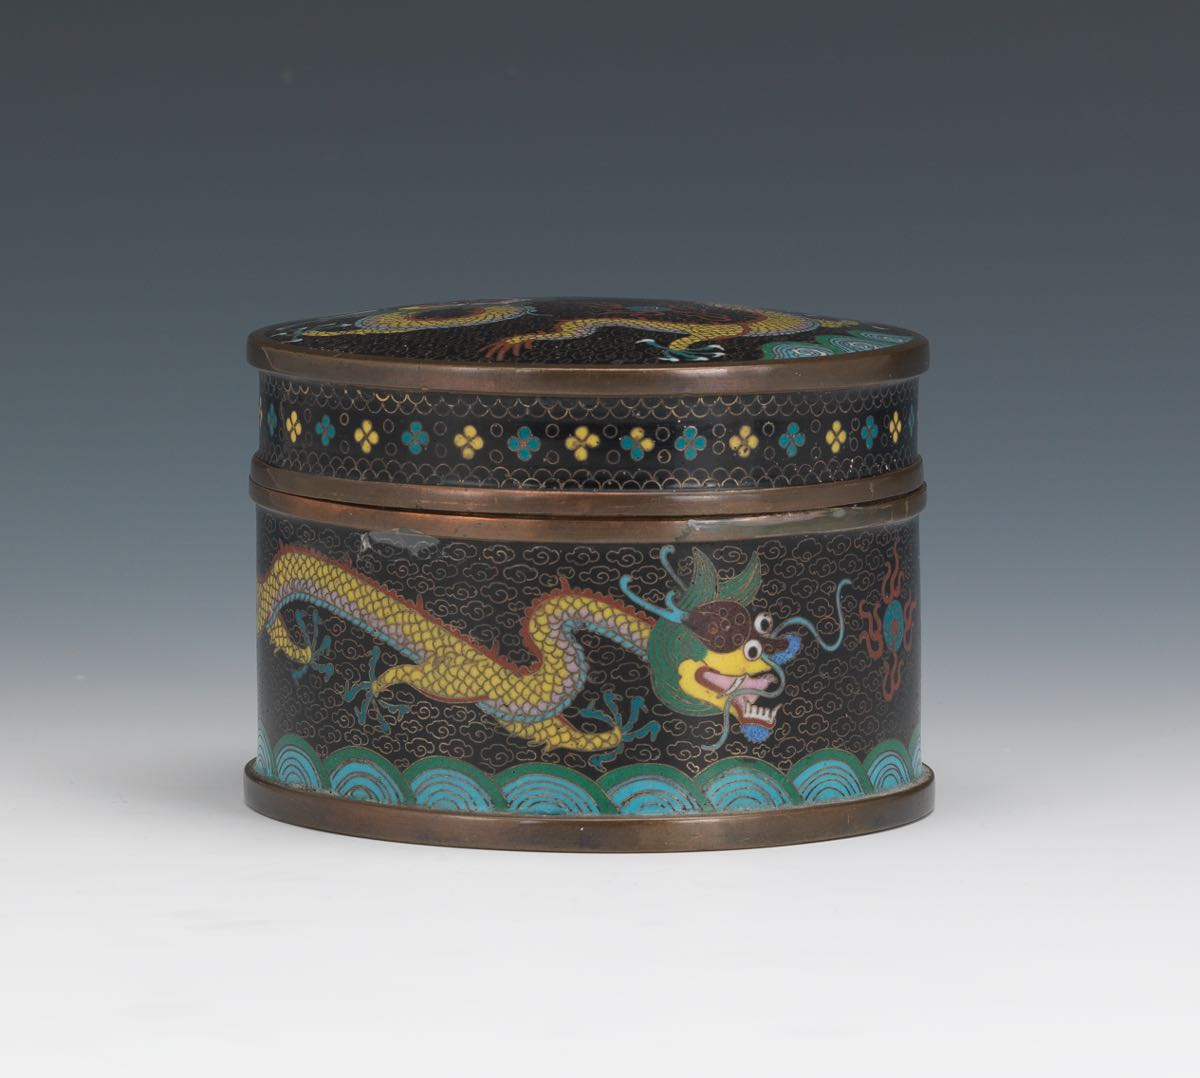 Cloisonne dragon box 021915 sold 1955 cloisonne dragon box reviewsmspy